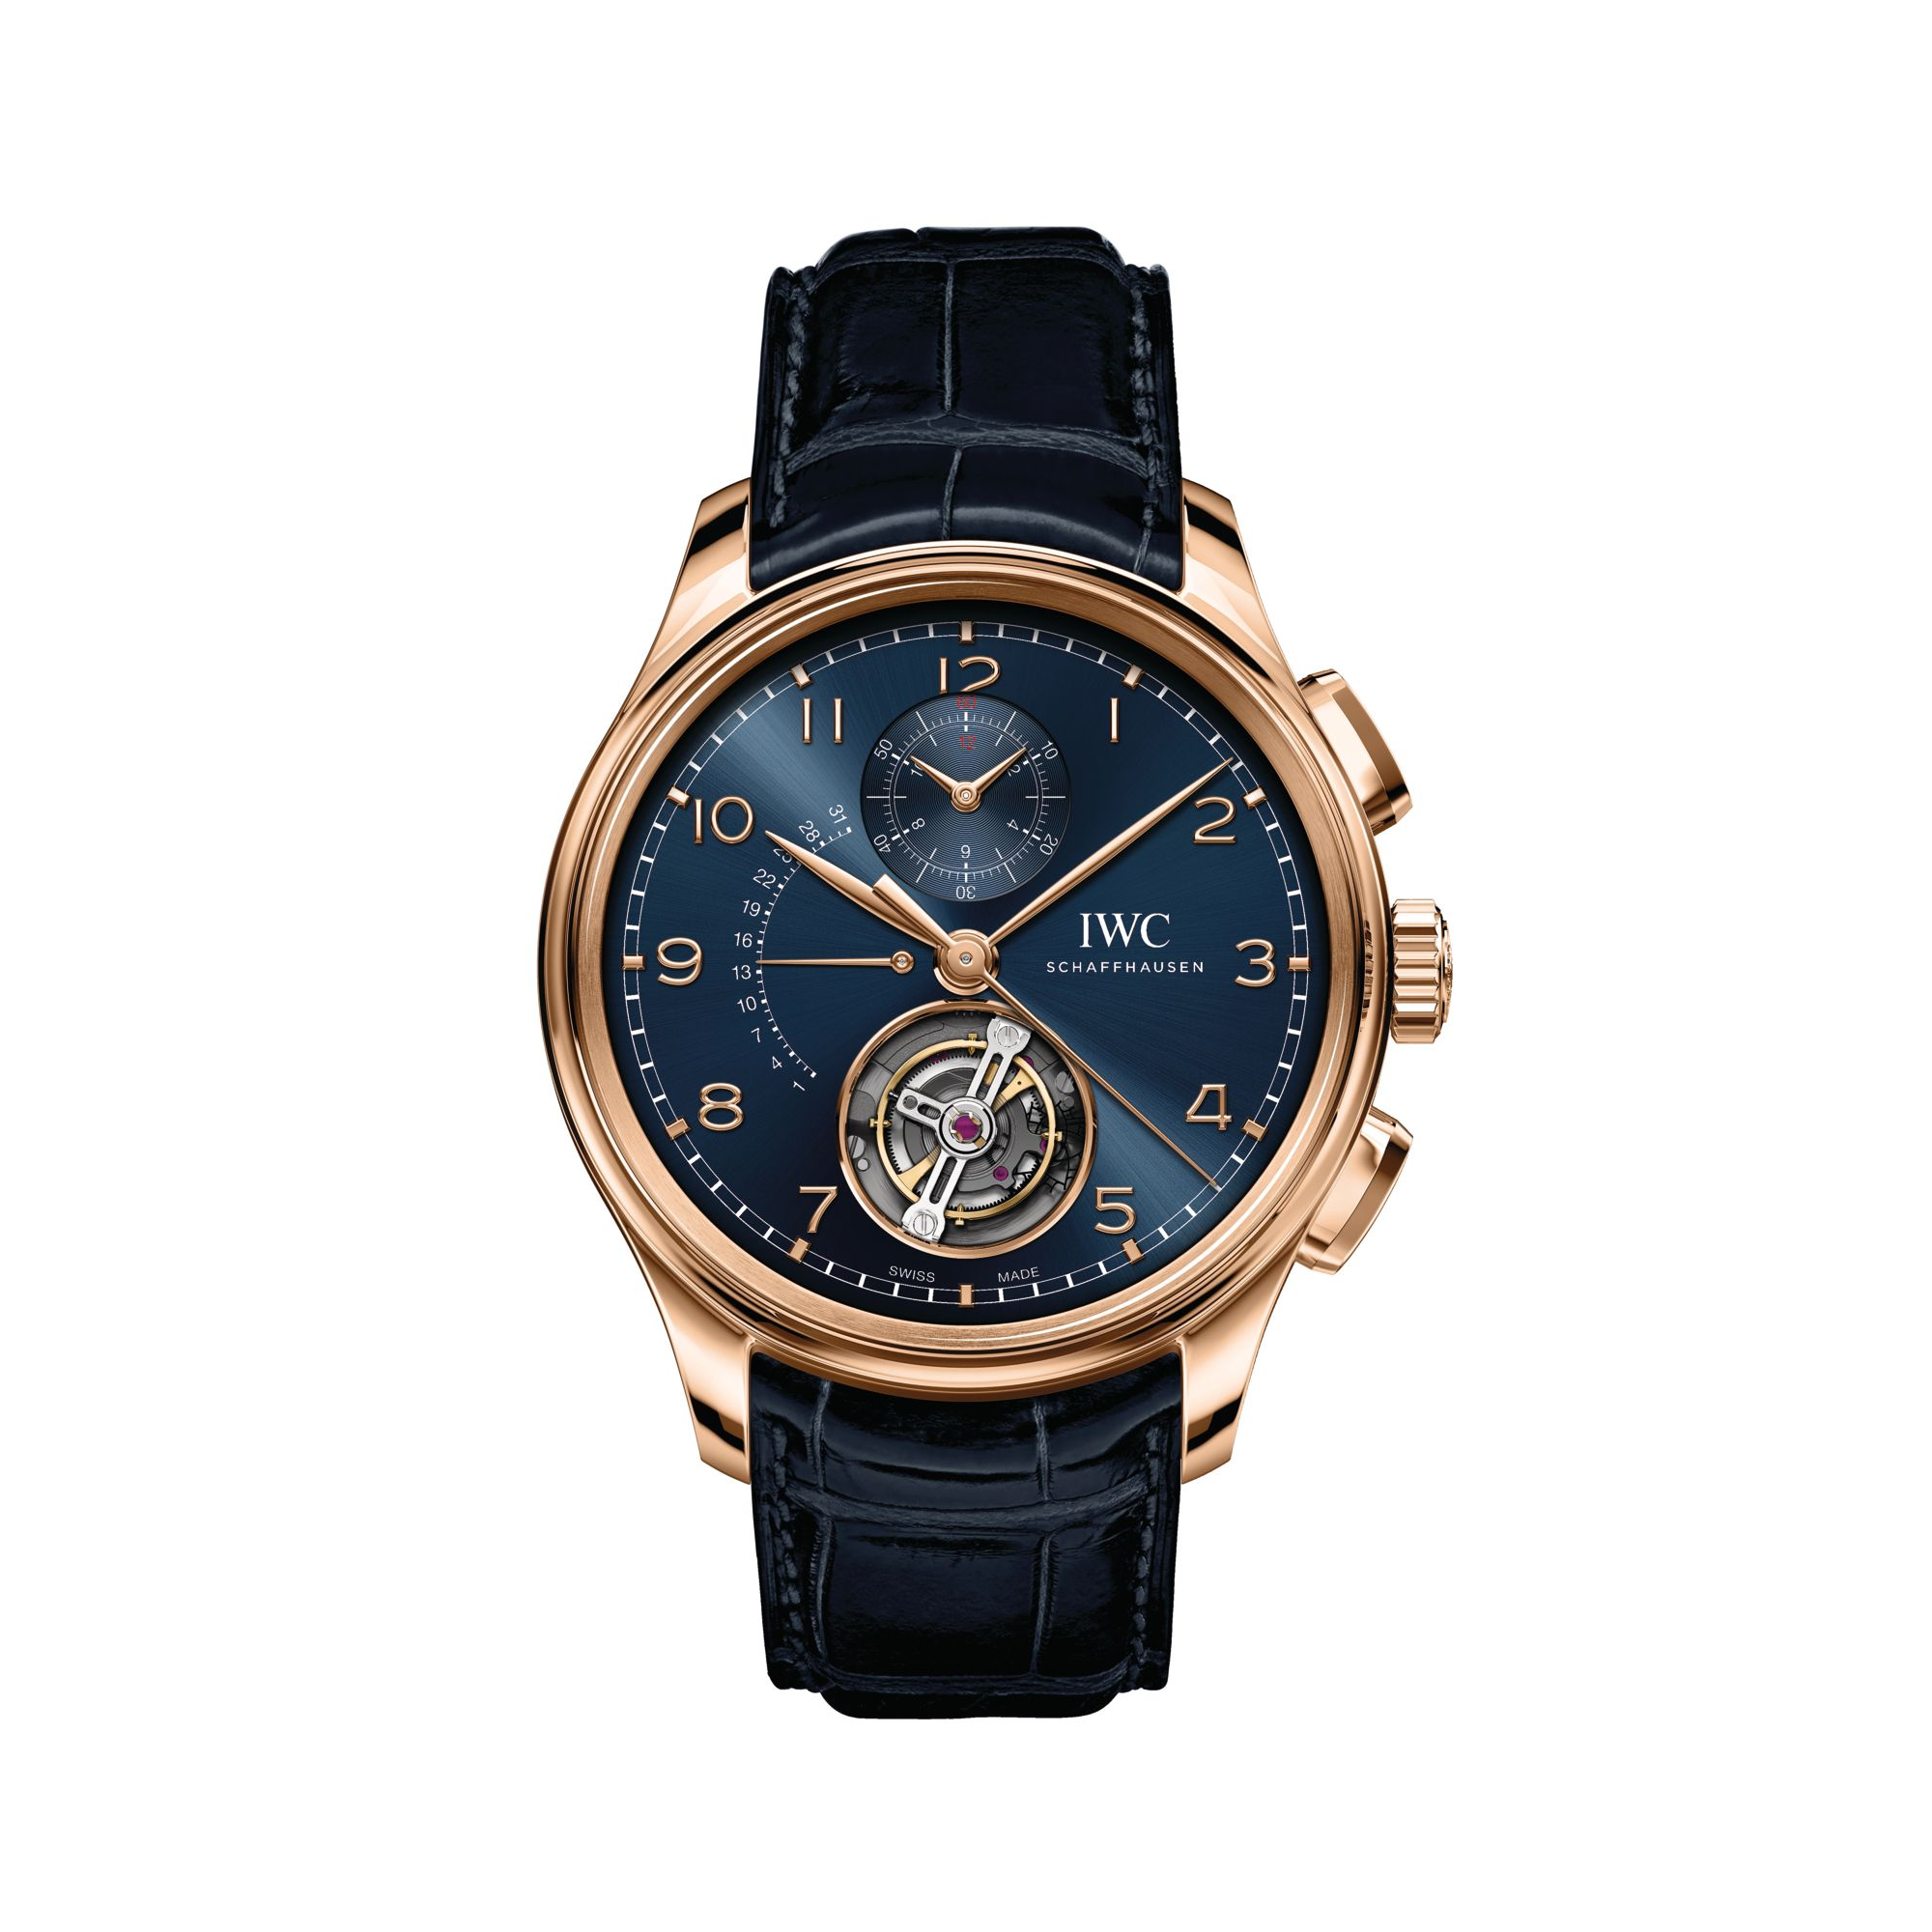 Everything You Need To Know About The Portugieser Tourbillon Rétrograde Chronograph By IWC Schaffhausen